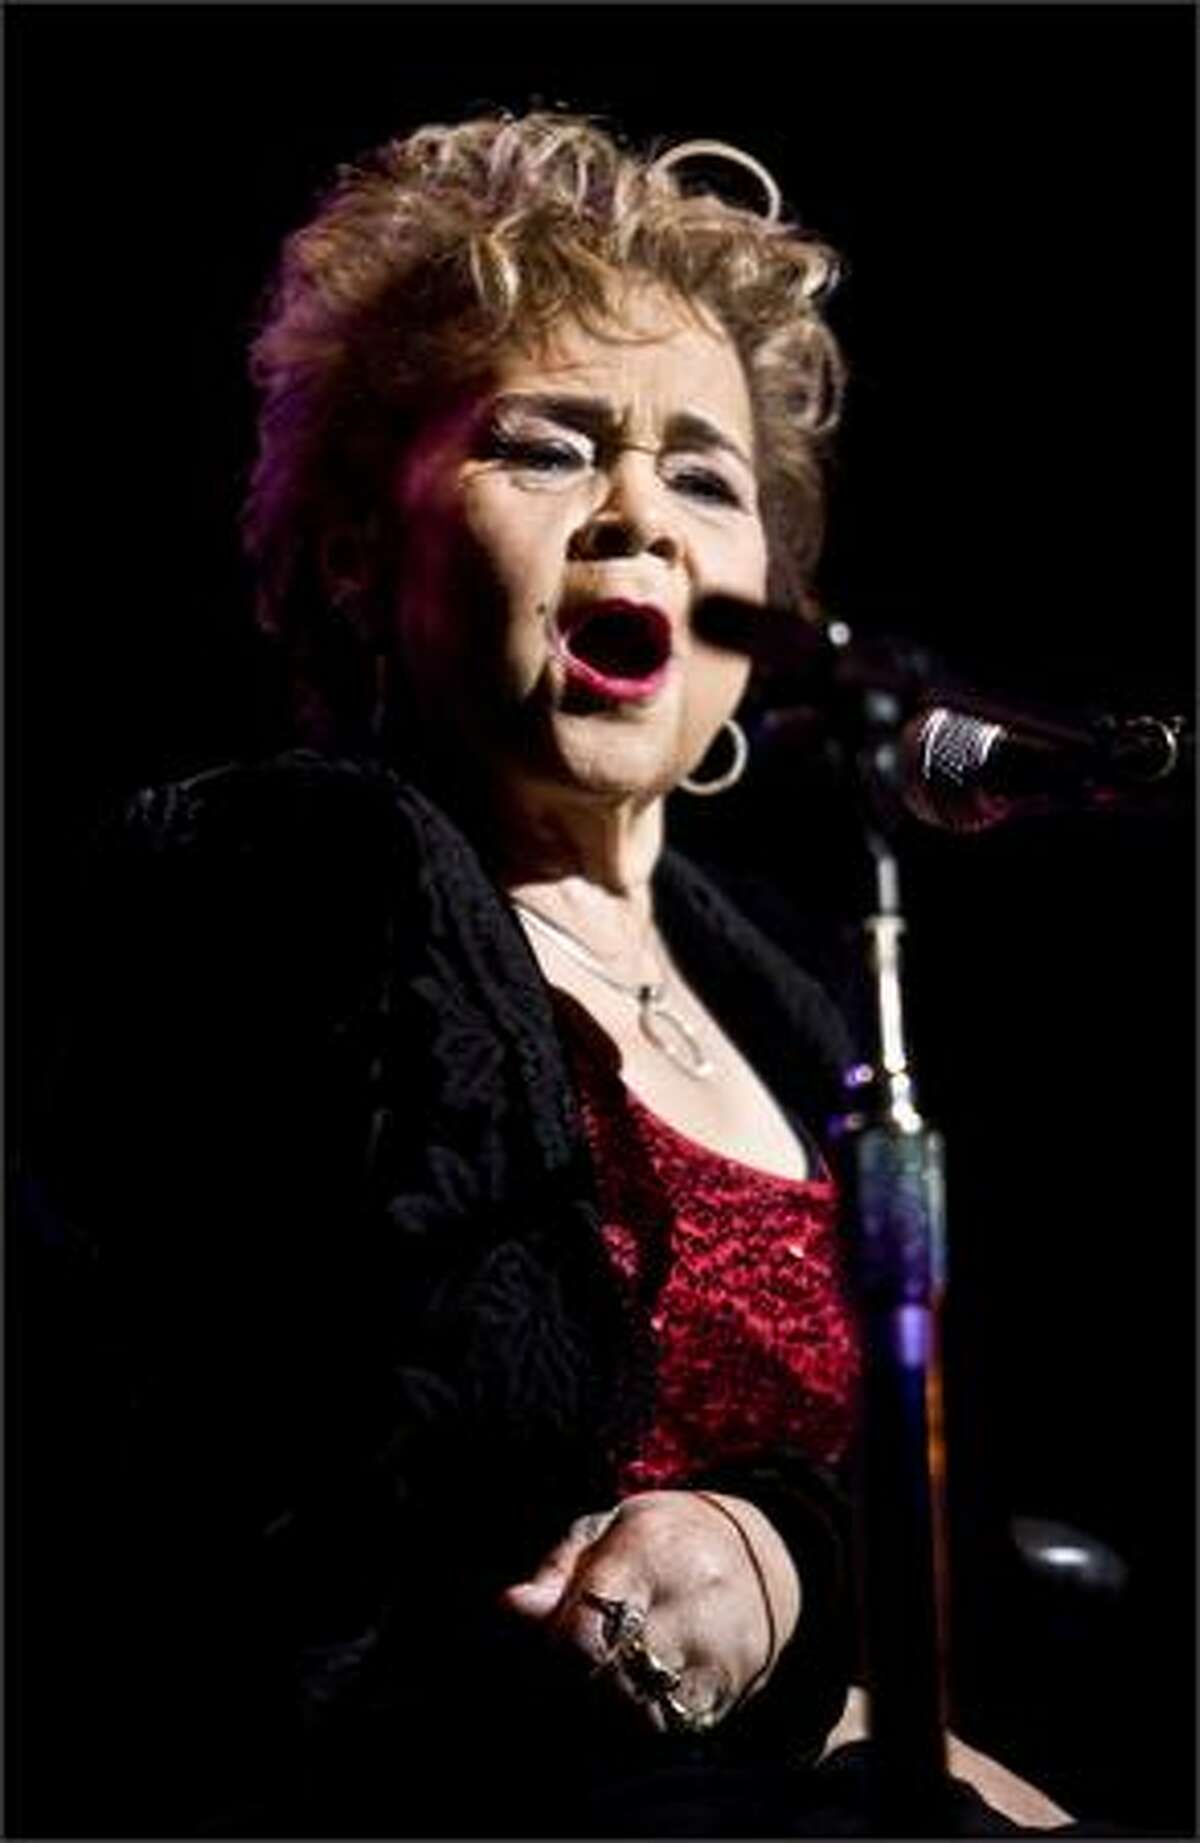 Etta James and the The Roots Band perform at the Paramount on Wednesday.